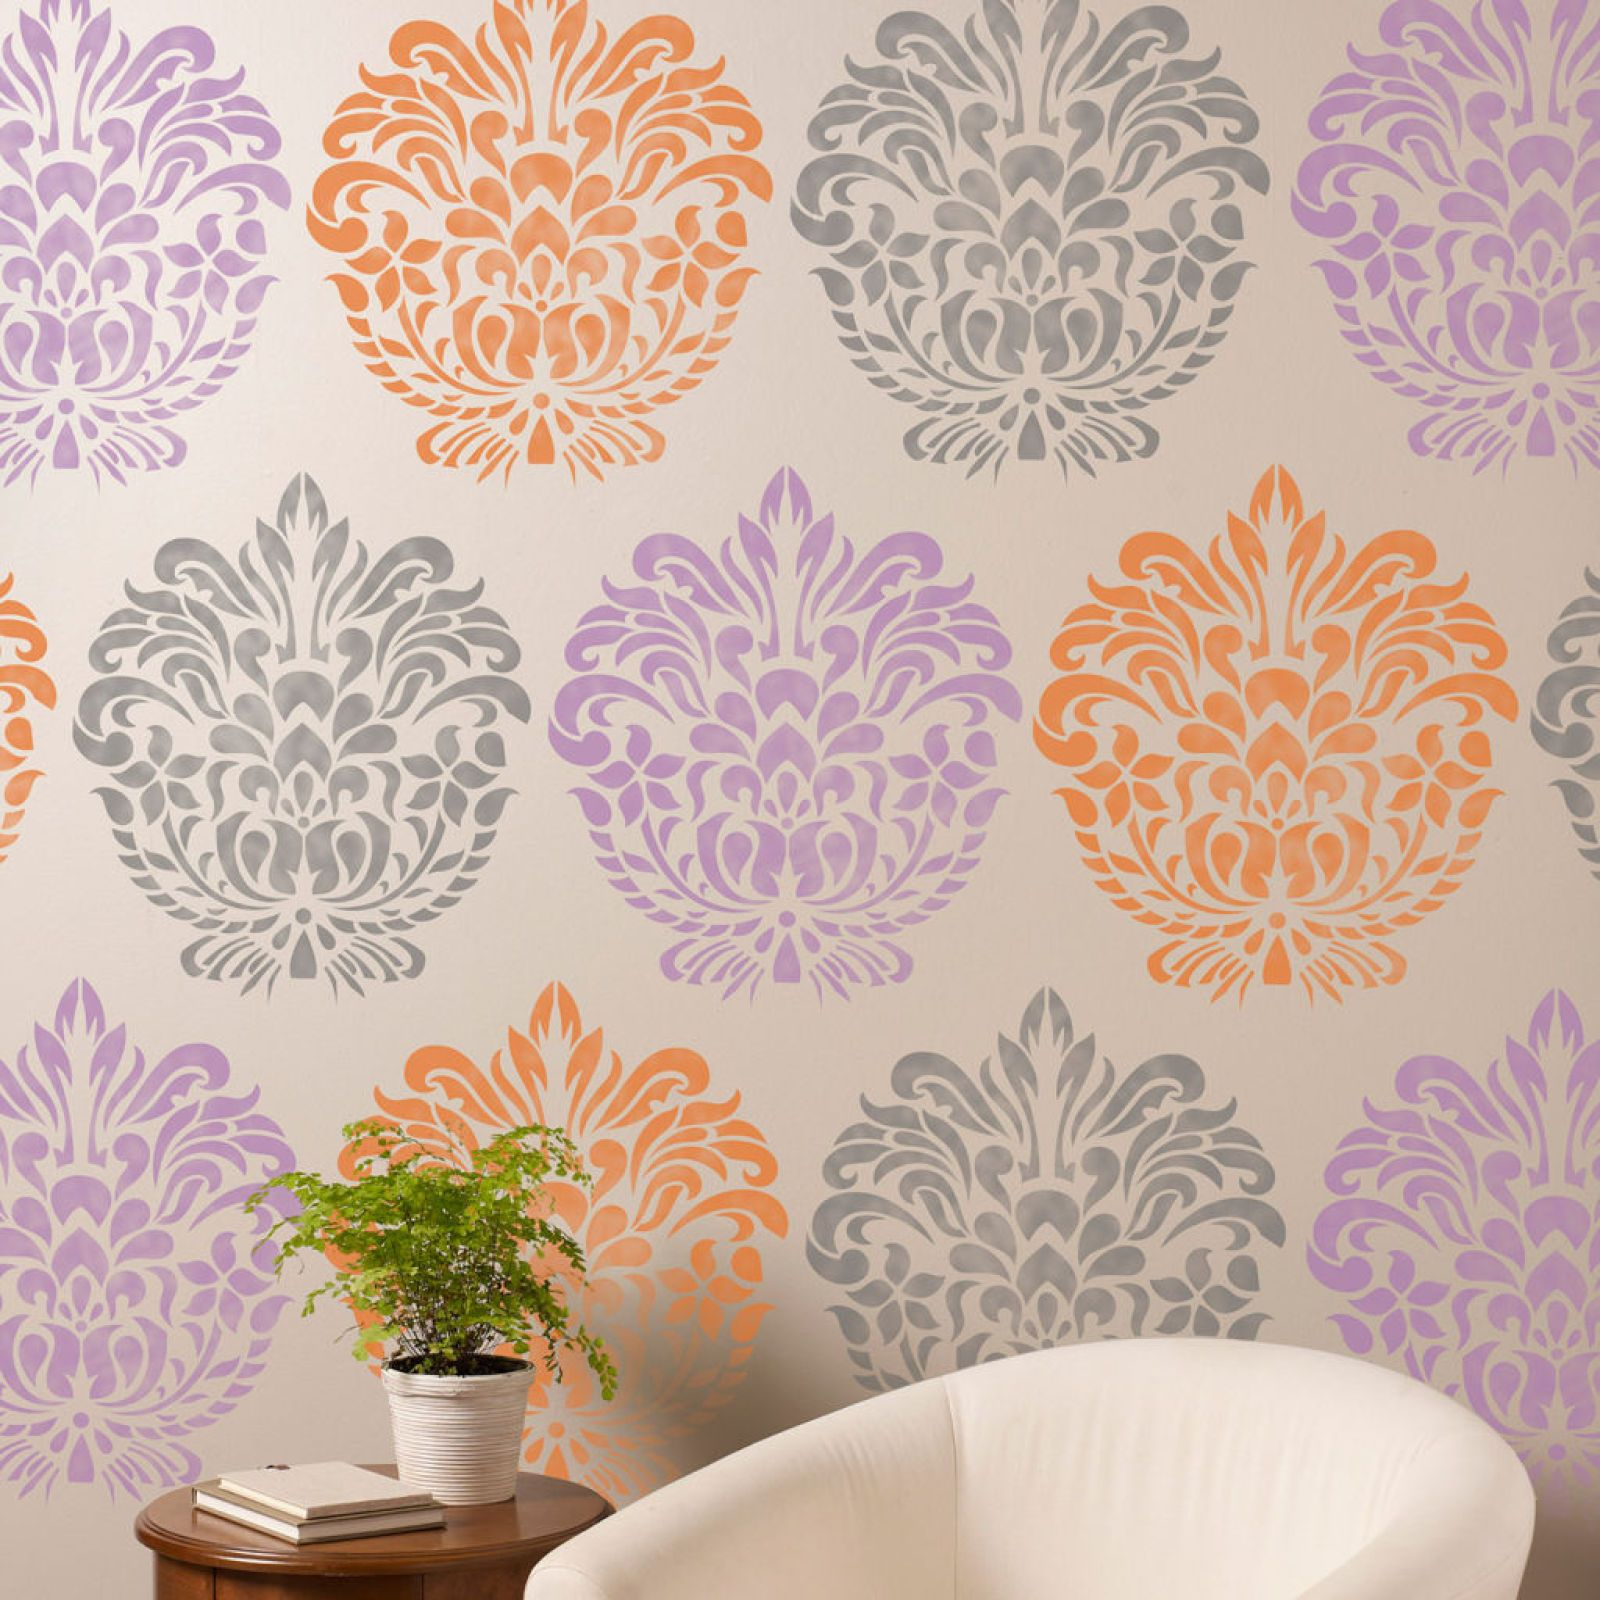 Artminds damask stencil wall ideas to ponder pinterest artminds damask stencil wall amipublicfo Gallery